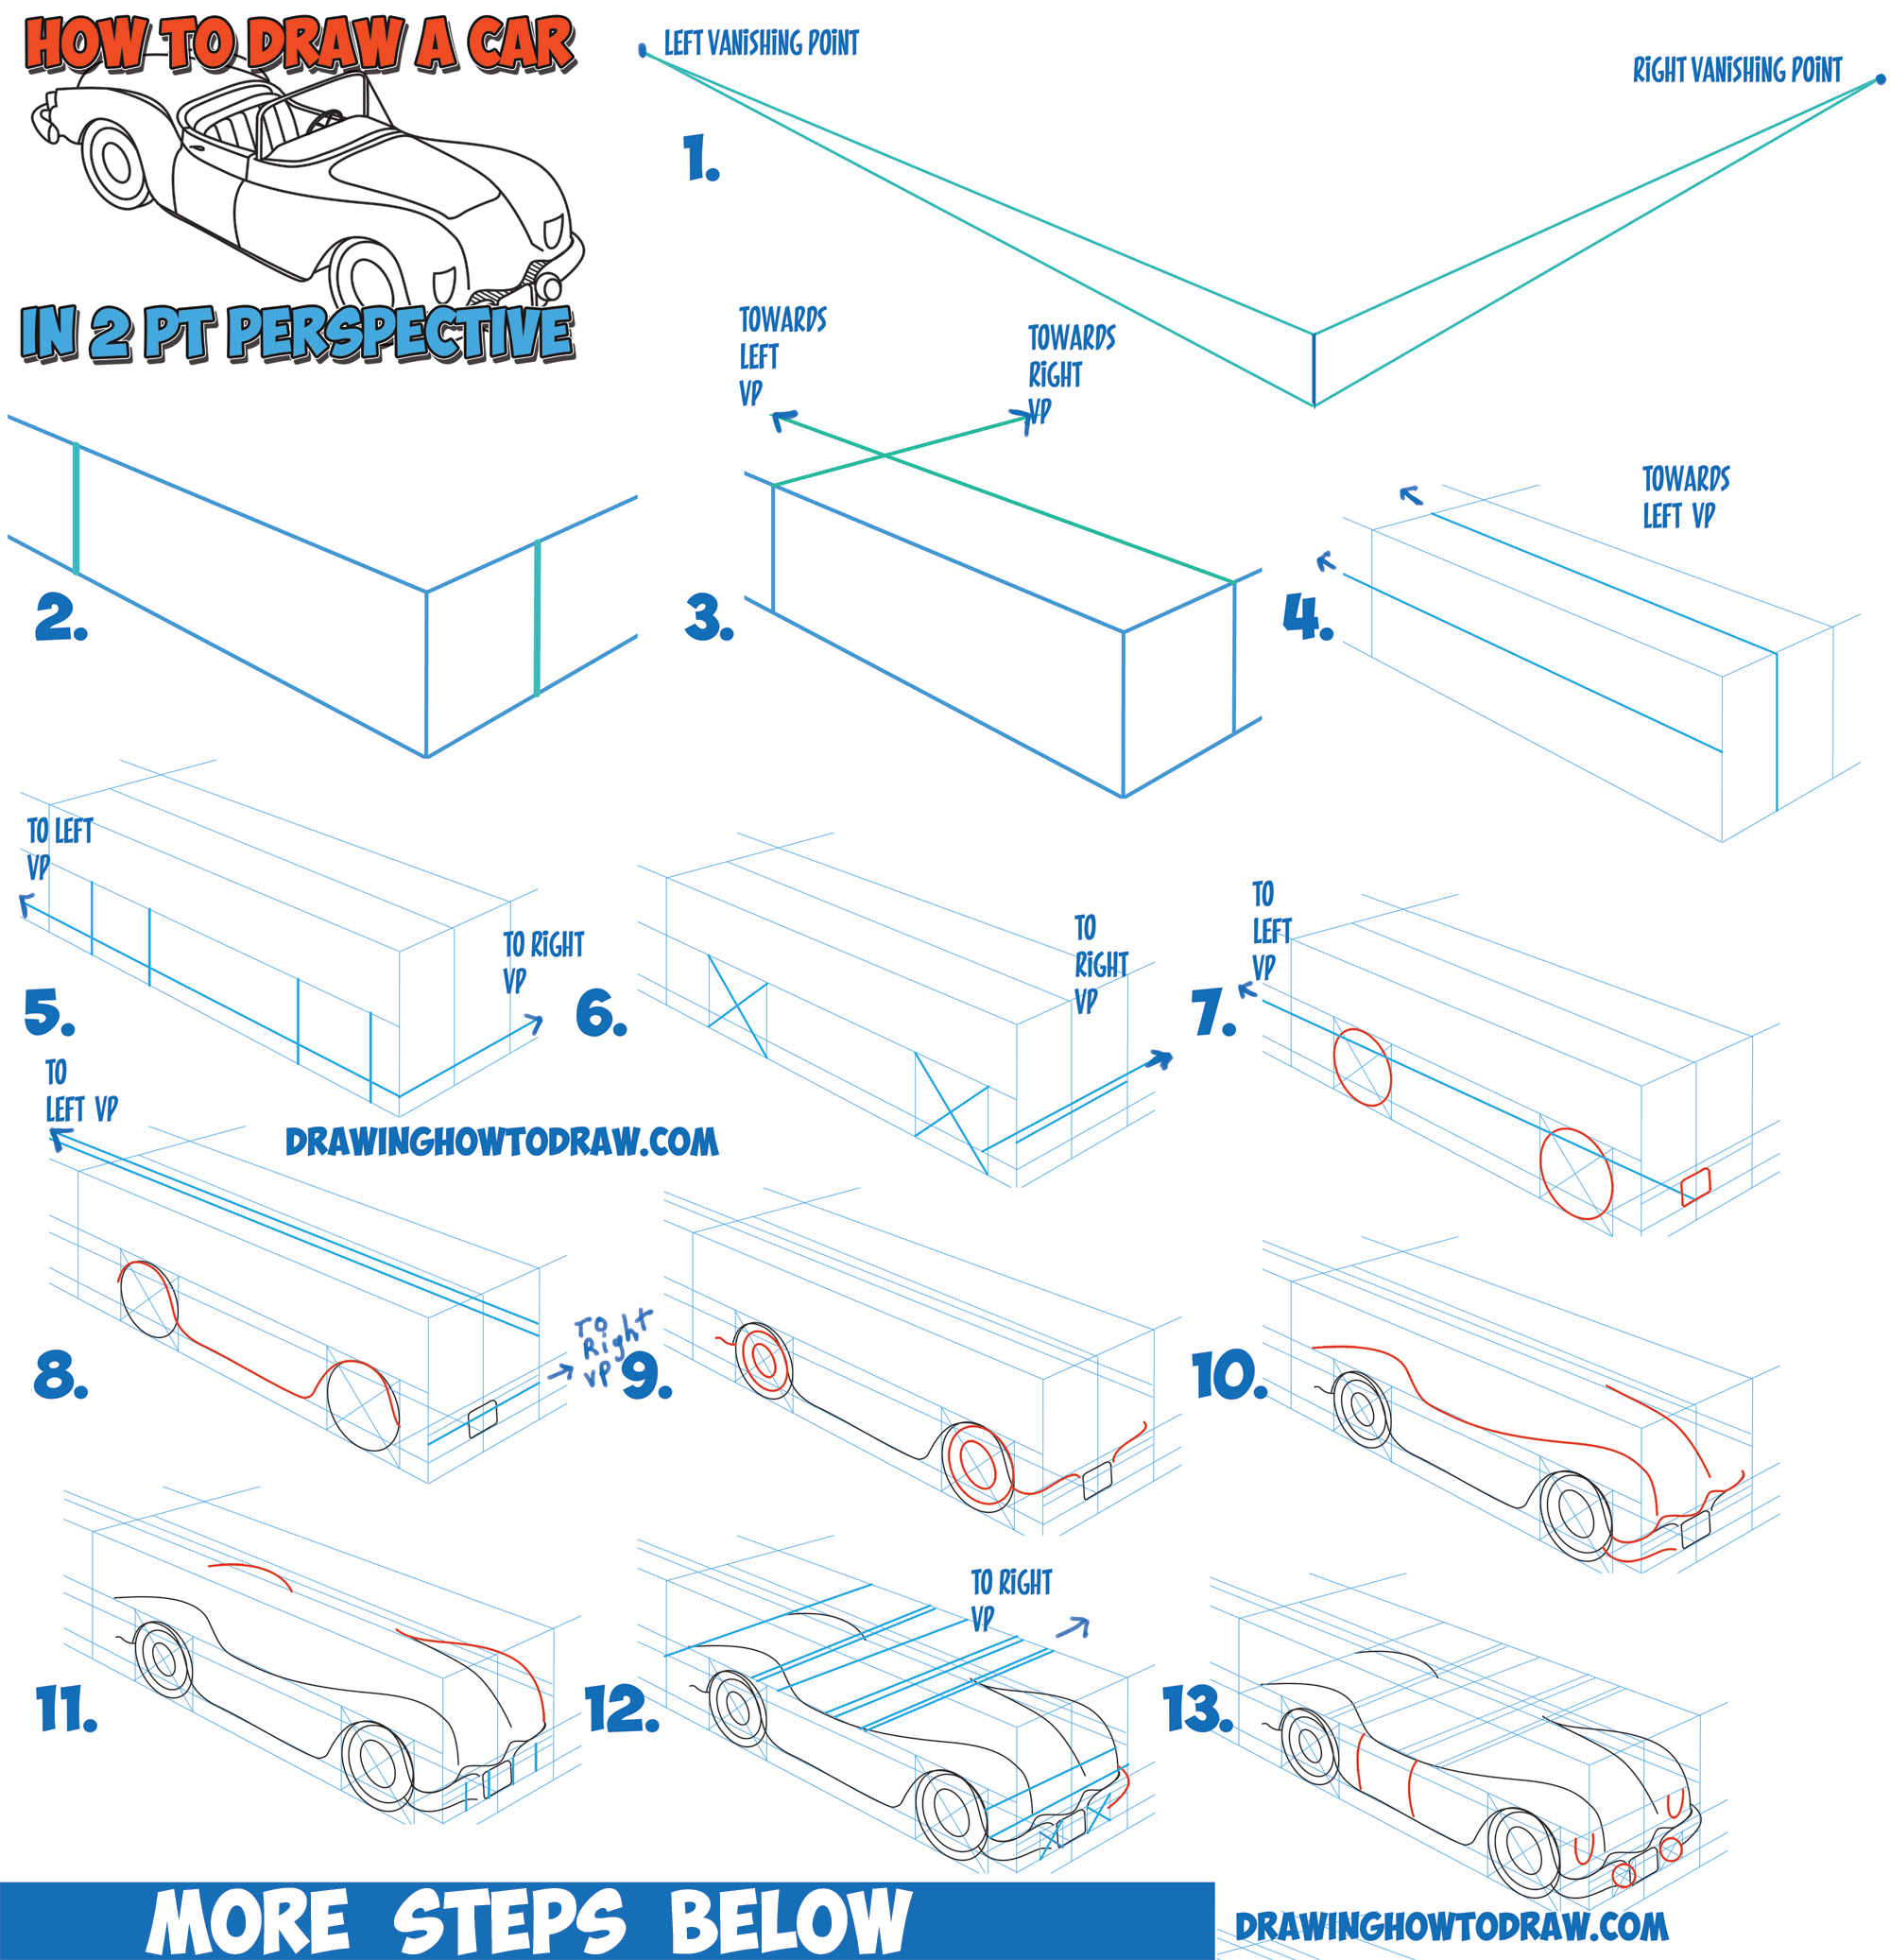 How To Draw A Car Convertible In Two Point Perspective Easy Step By